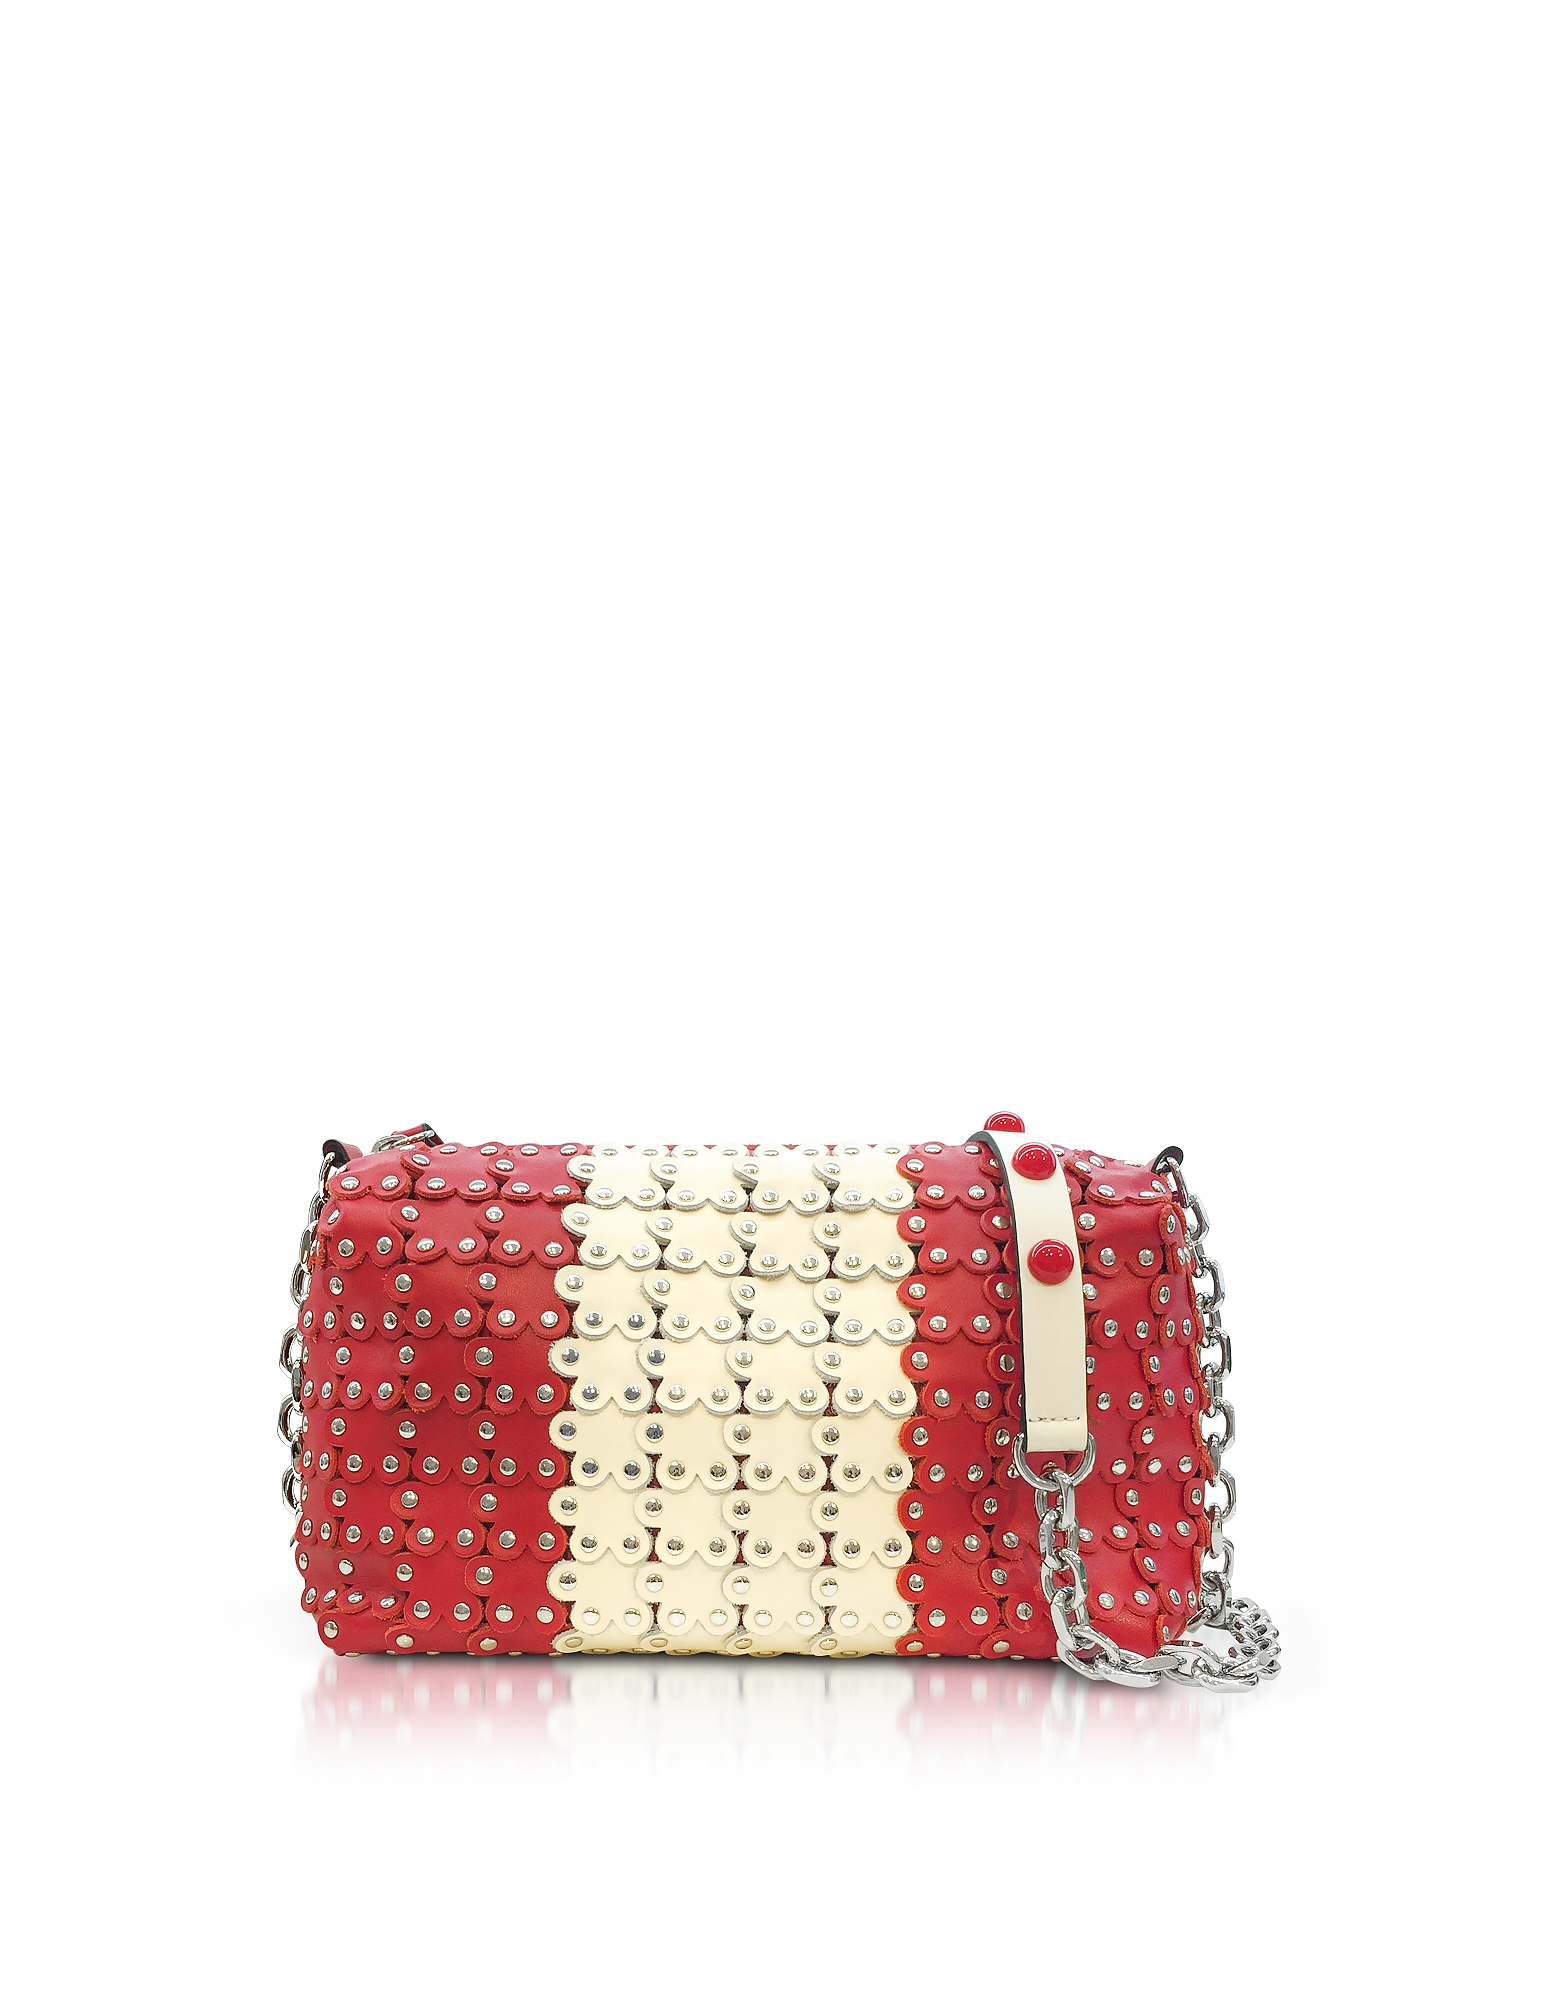 Image of RED Valentino Designer Handbags, Strawberry/Ivory Studded Leather Shoulder Bag